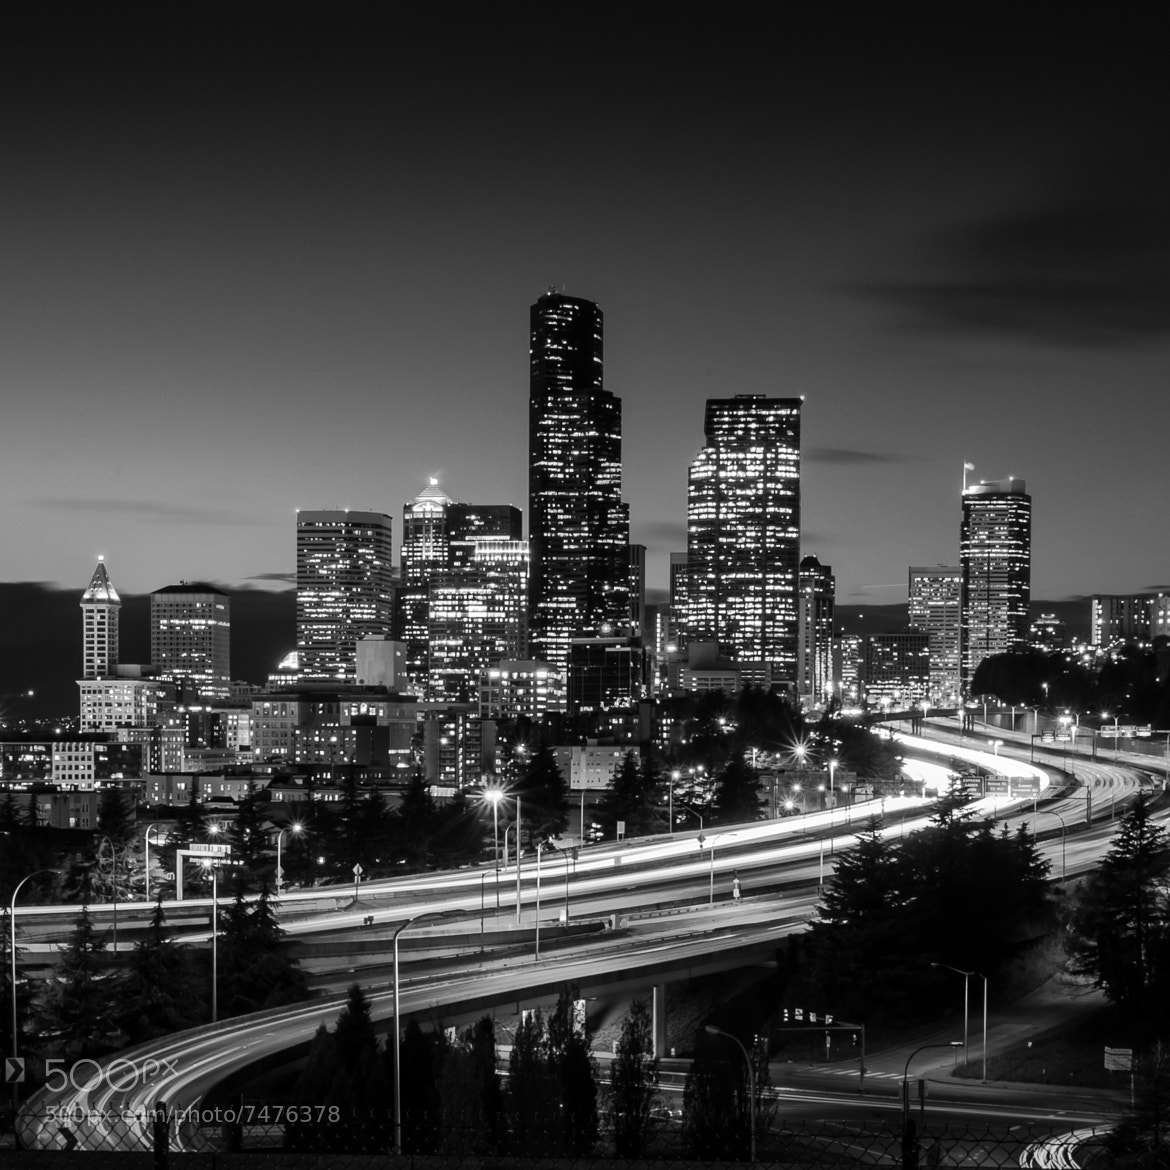 Photograph Seattle S-curve.  by Noom Photozaa on 500px